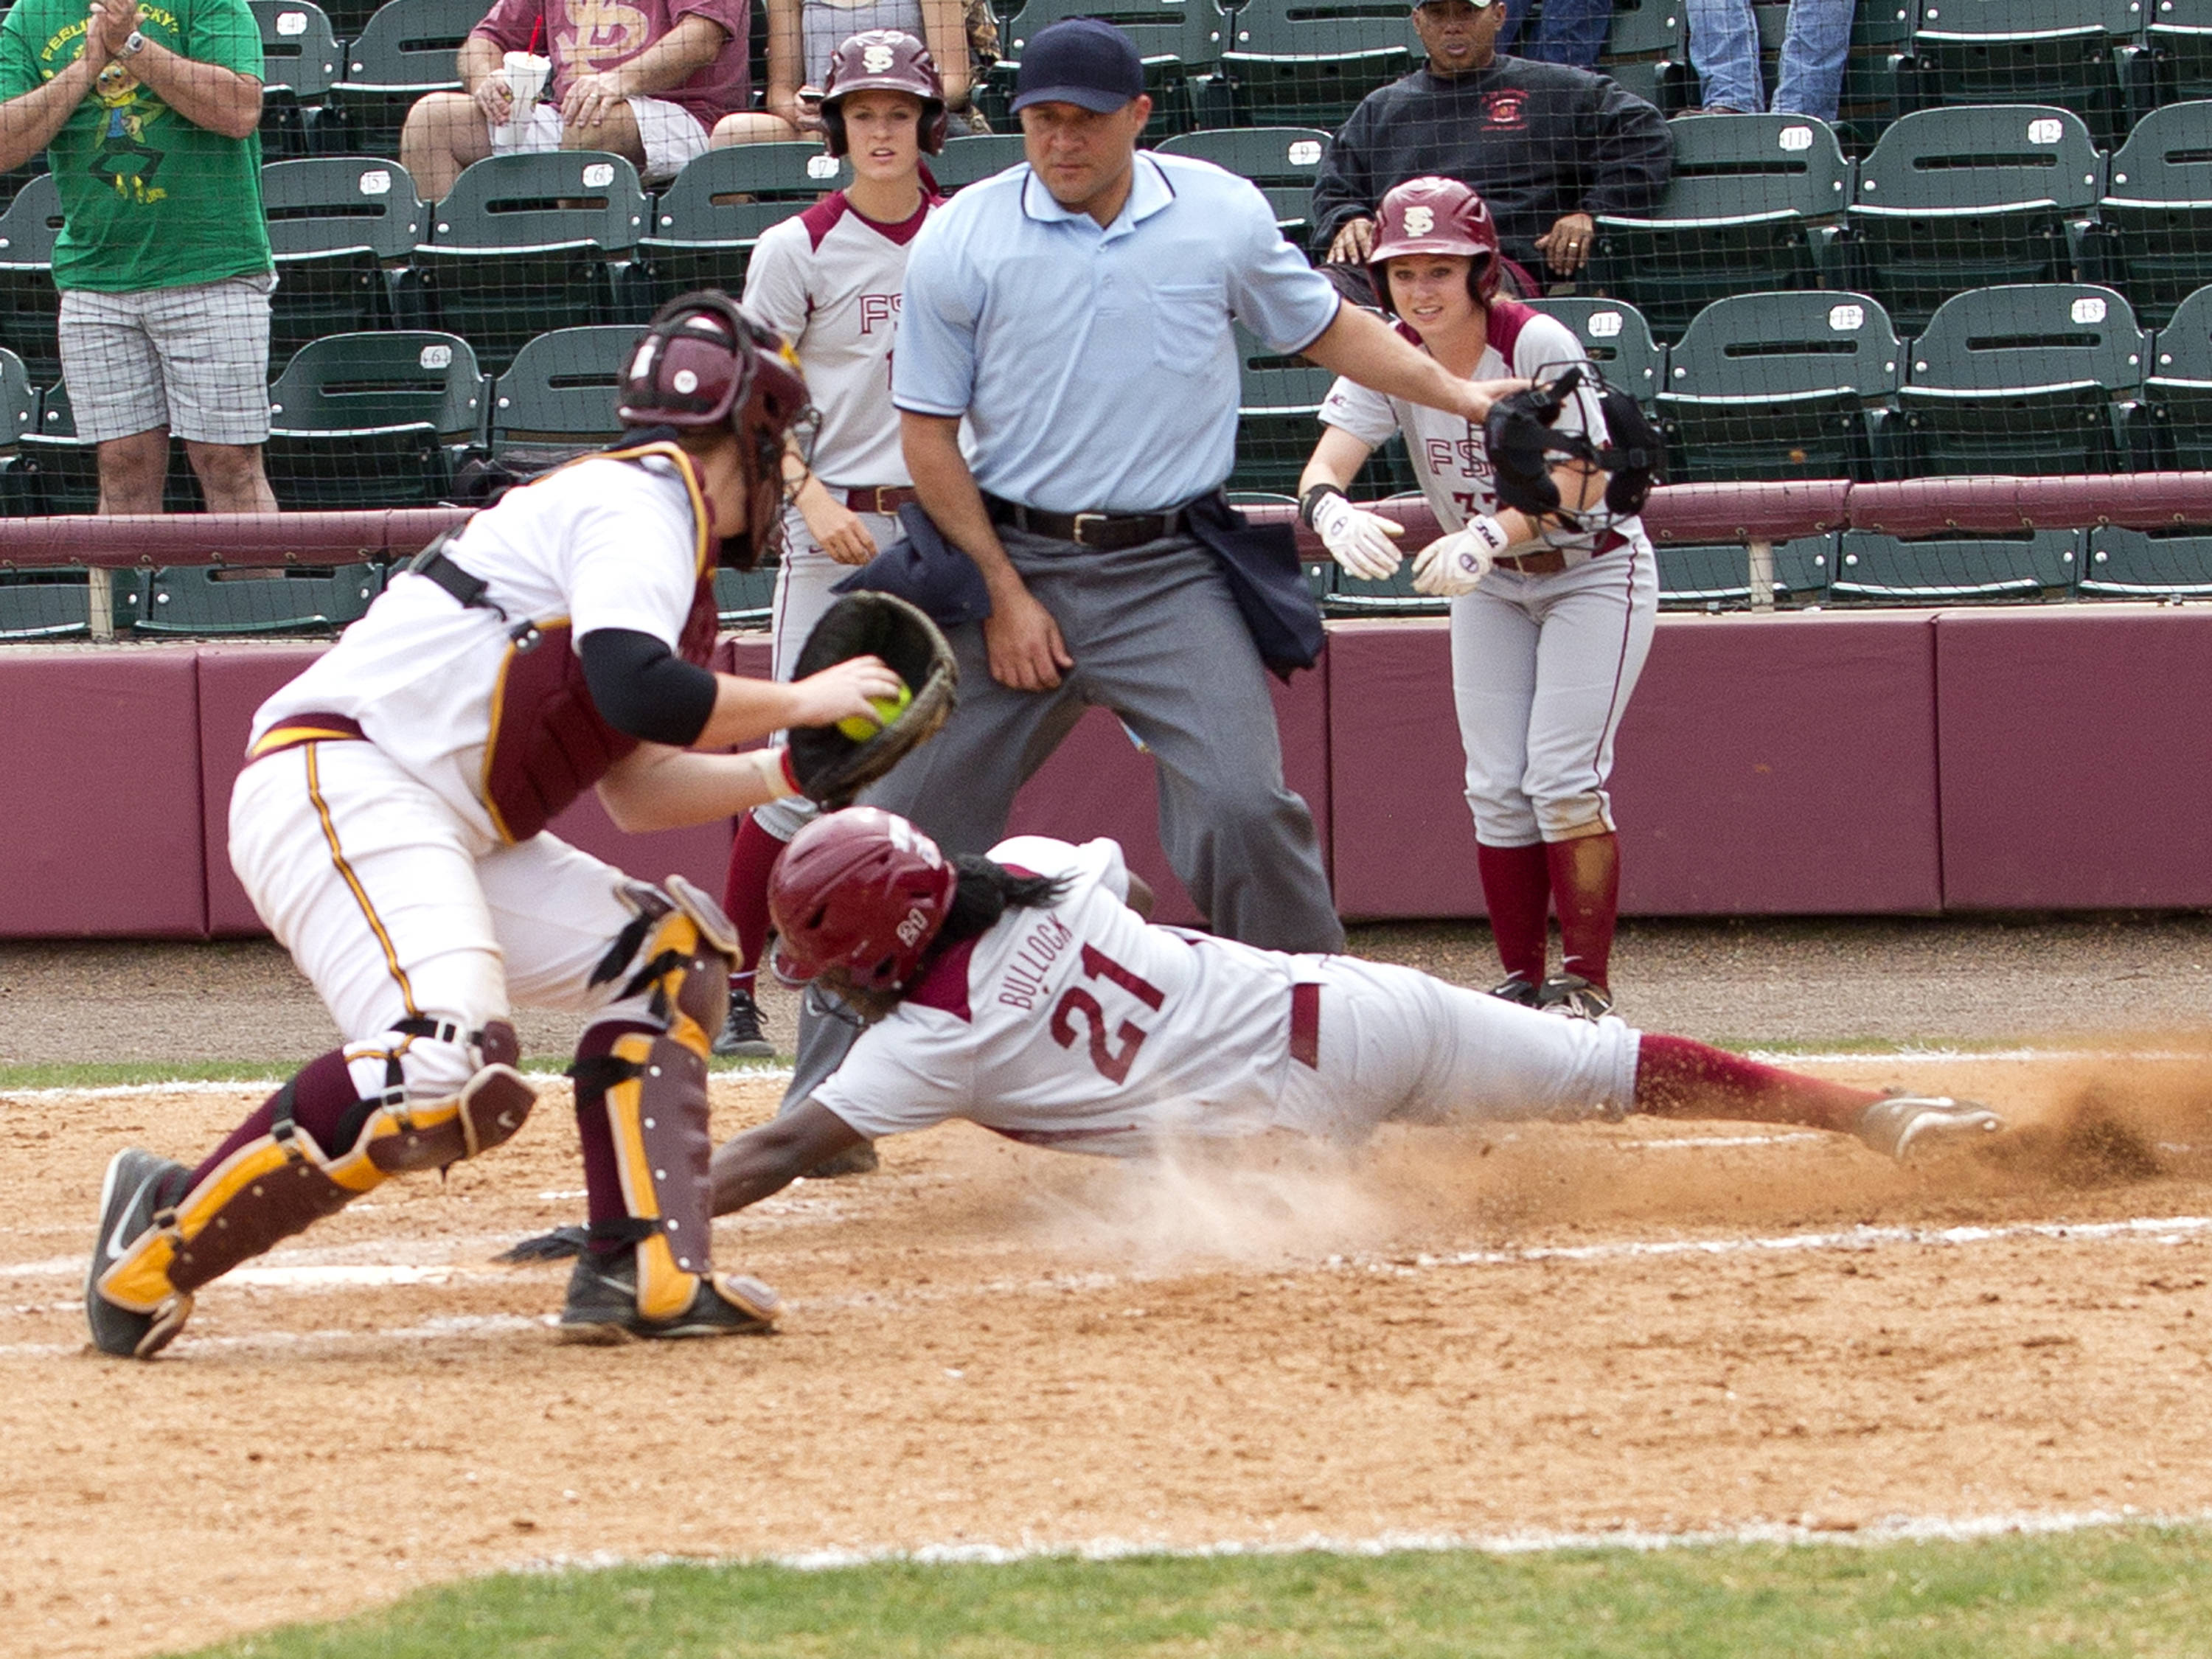 Morgan Bullock (21) with a run scoring hook slide, FSU vs Minnesota, 03/17/13. (Photo by Steve Musco)